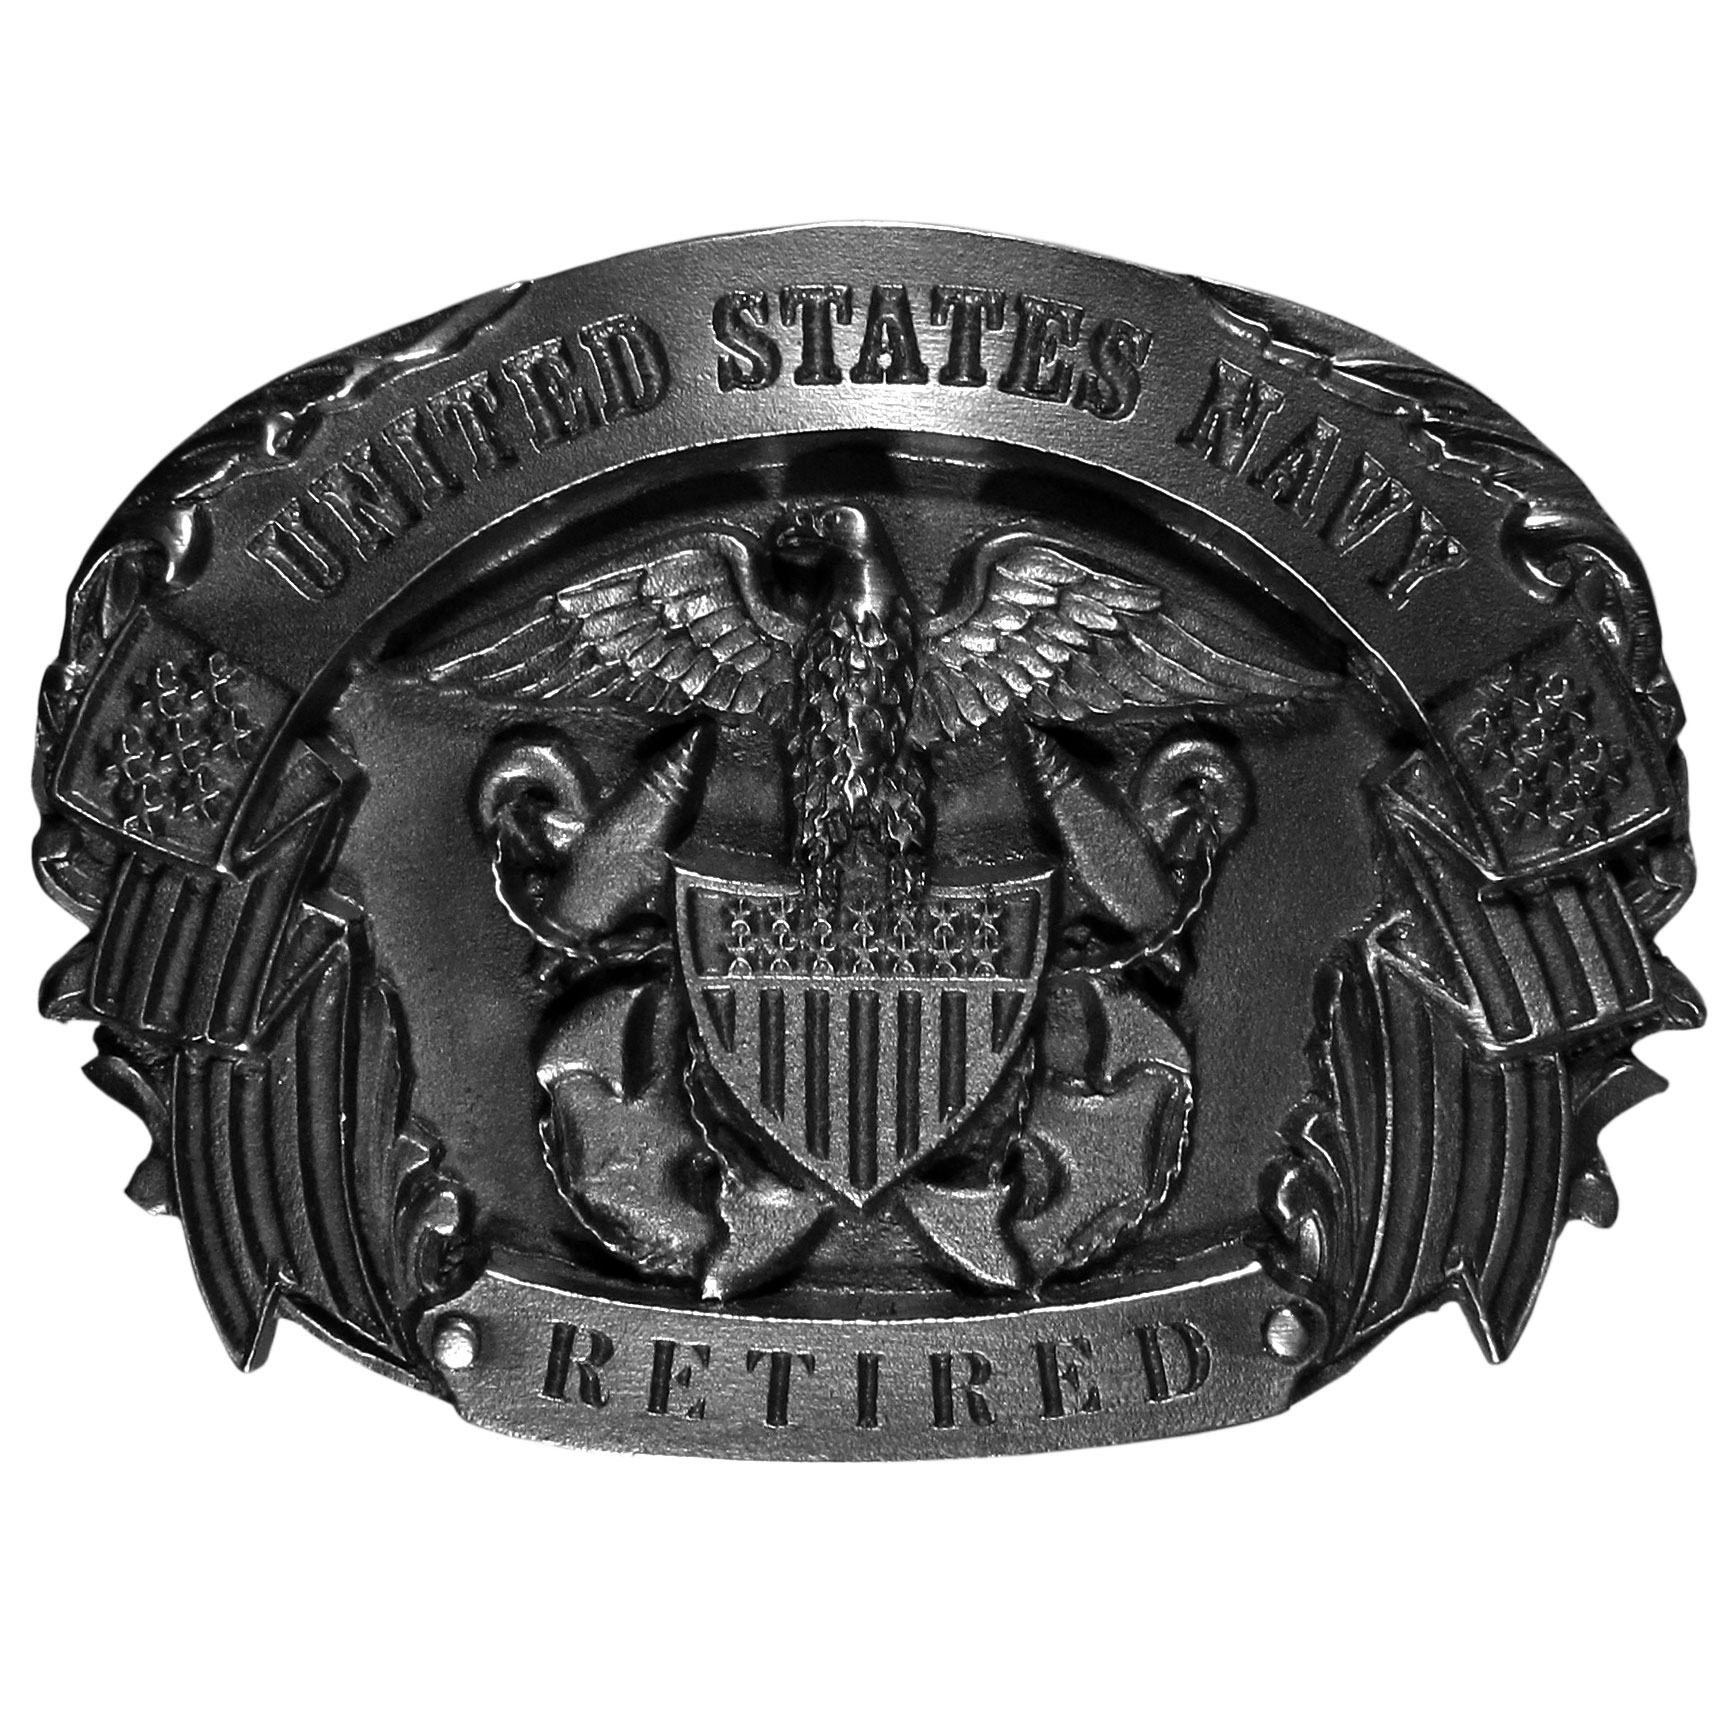 Navy Retired Belt Buckle - Finely sculpted and intricately designed belt buckle. Our unique designs often become collector's items.